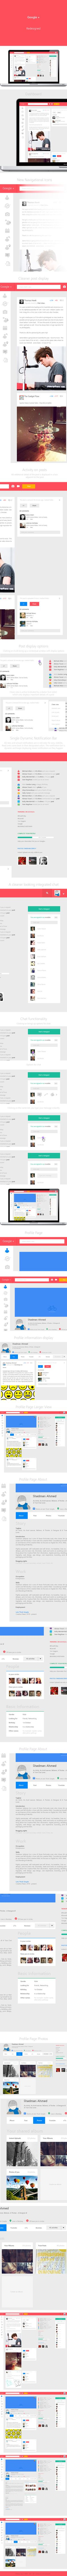 "Google+ Redesigned Concept *** ""A concept work (in progress) for Google +. The objective is to make it more cleaner, with lesser distraction and follow the flat UI trend in design."" by Shadman Ahmed, via Behance *** #google+ #concept #gui"